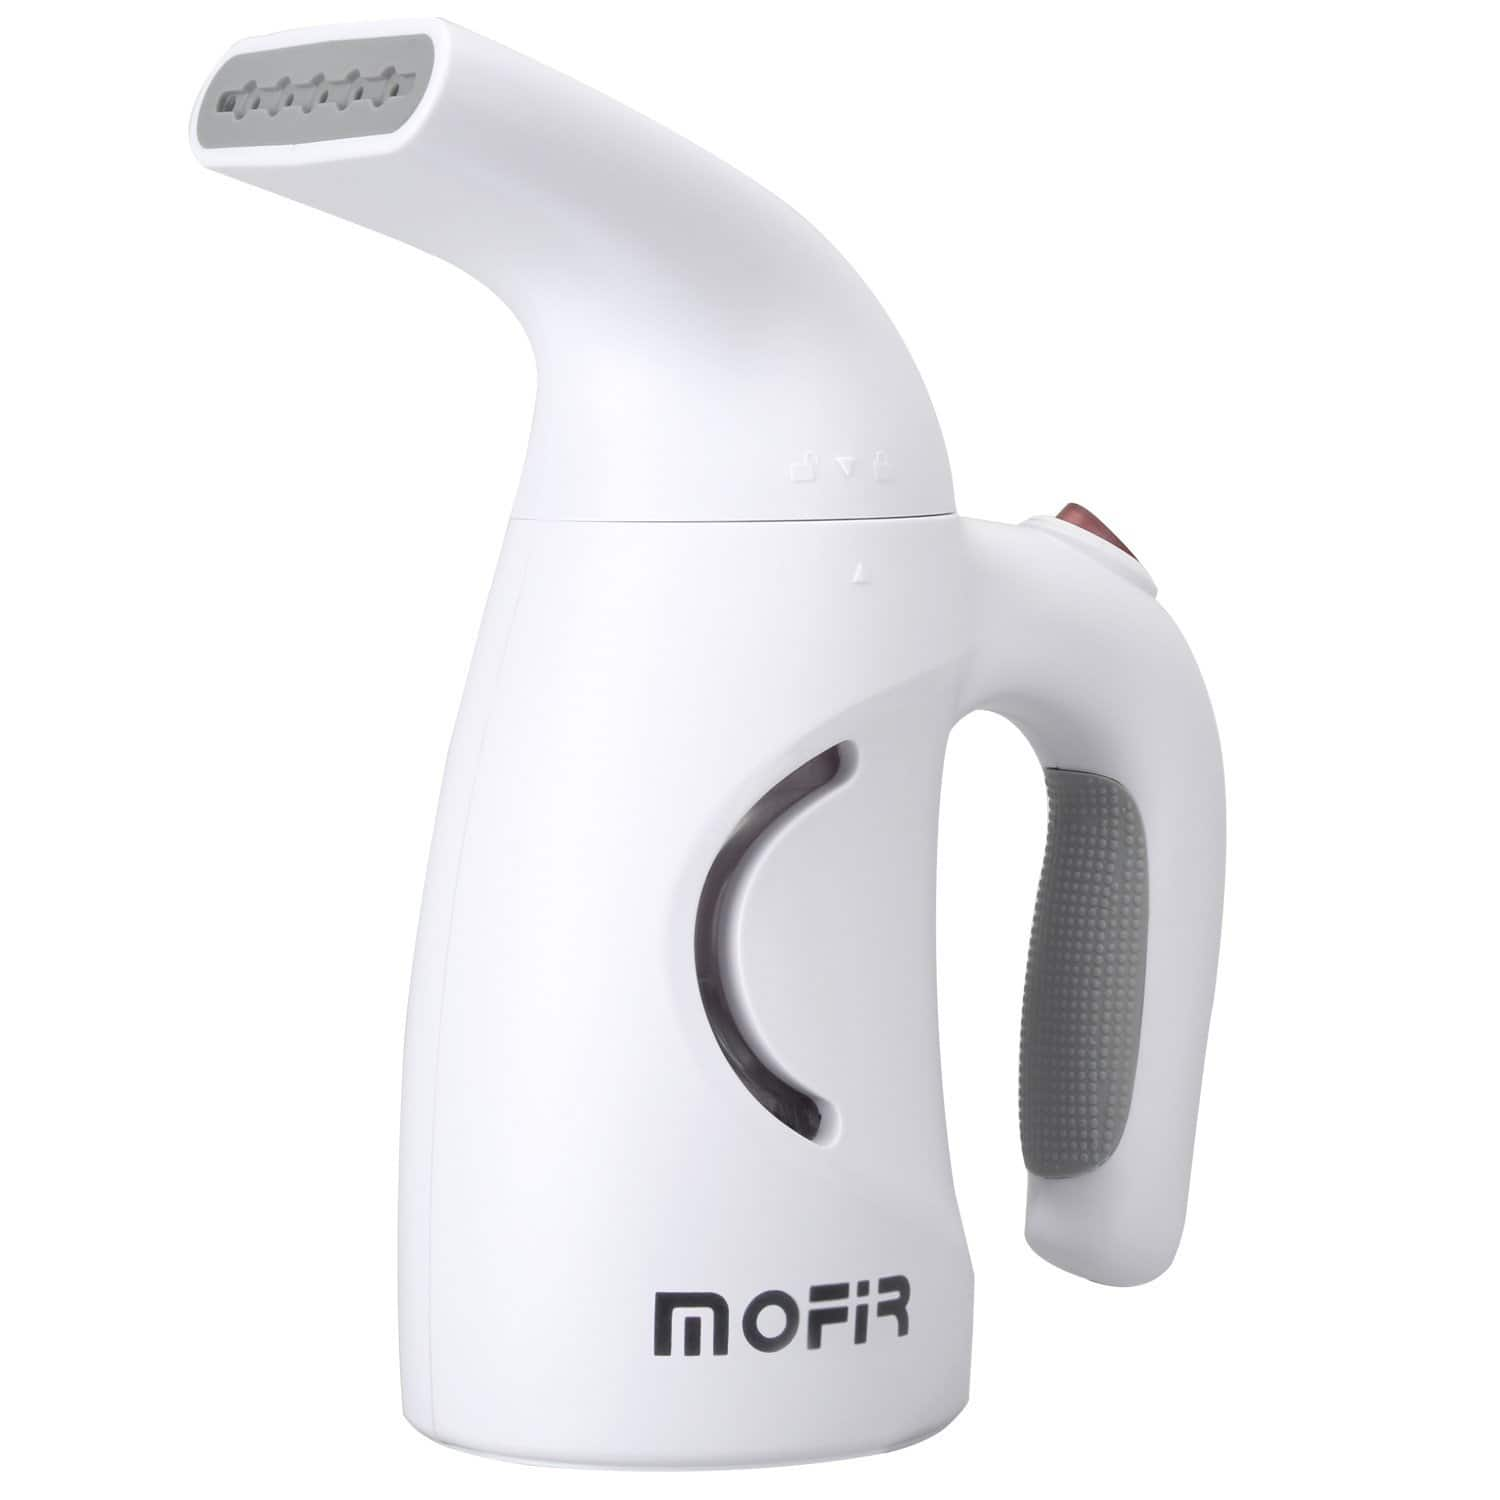 Portable Fast-Heat Up Travel Handheld Steamer for Clothes Garments 50% off $9.99